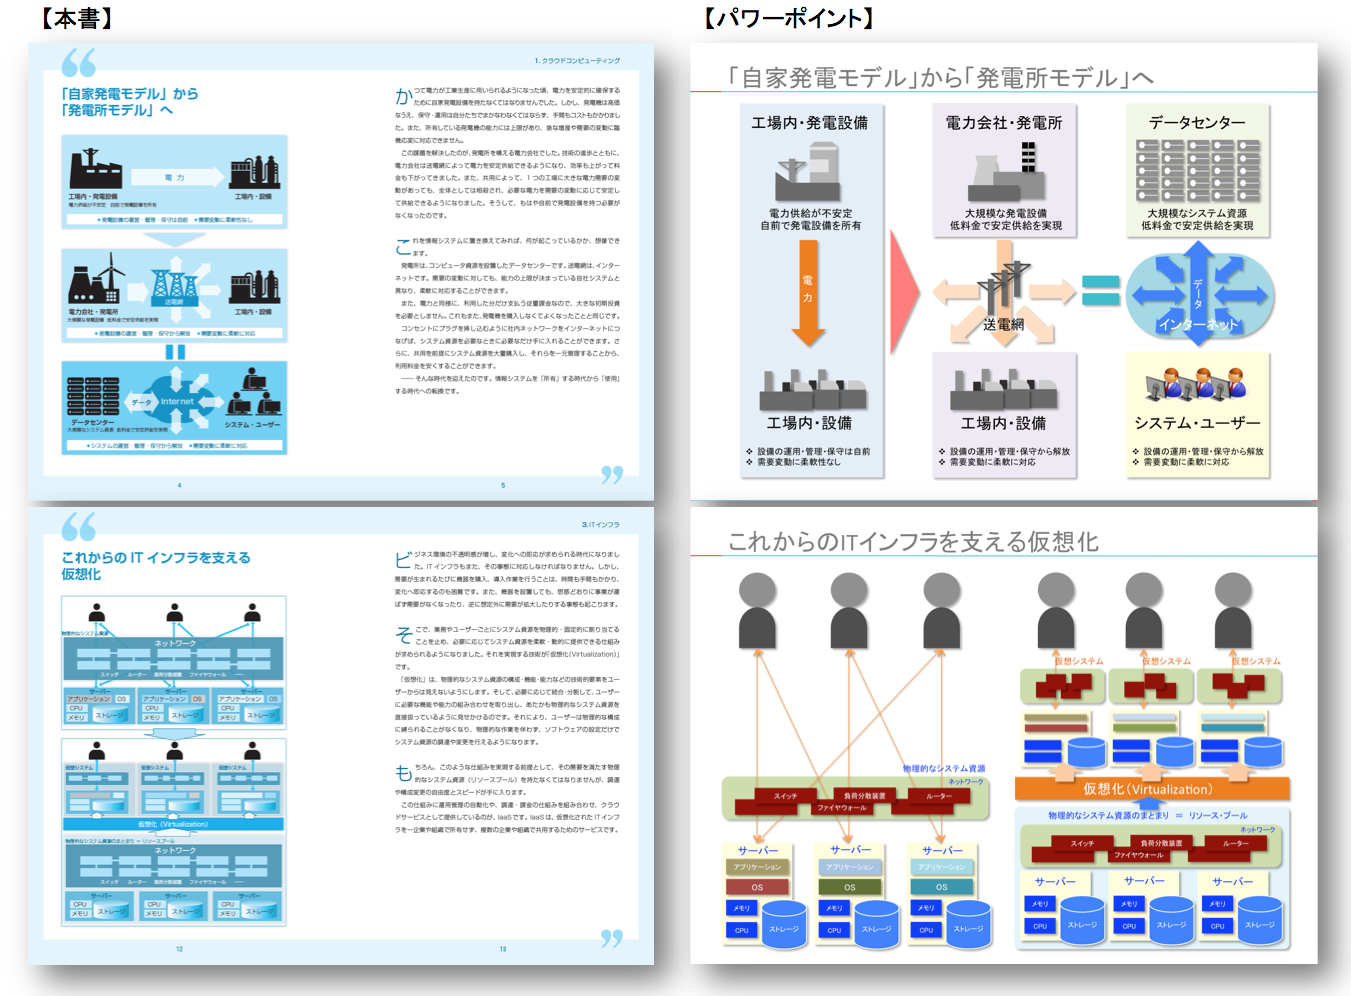 https://blogs.itmedia.co.jp/appliedmarketing/150119book2.png